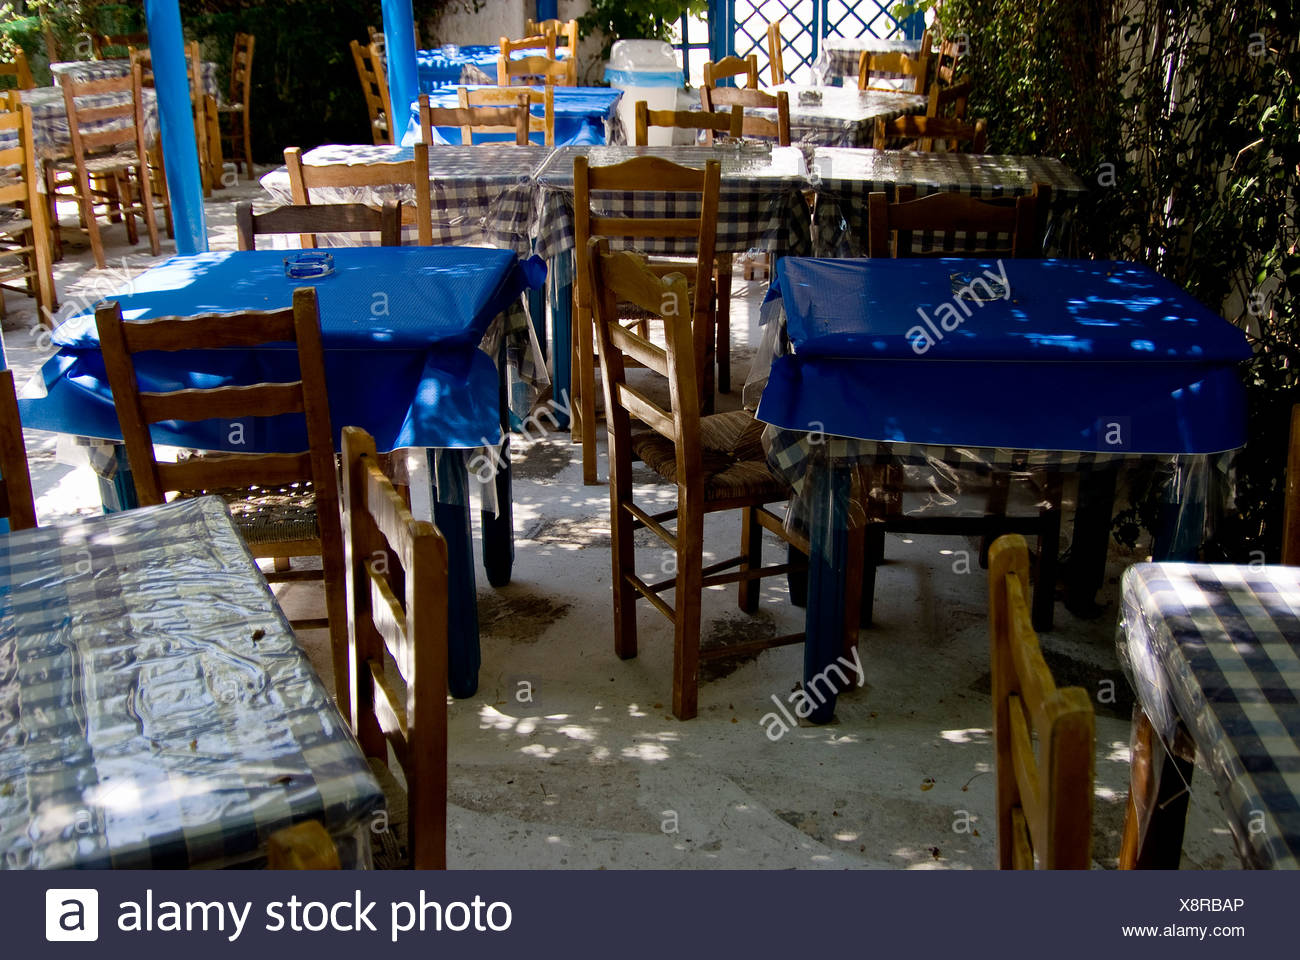 Restaurant tables on the terrace - Stock Image